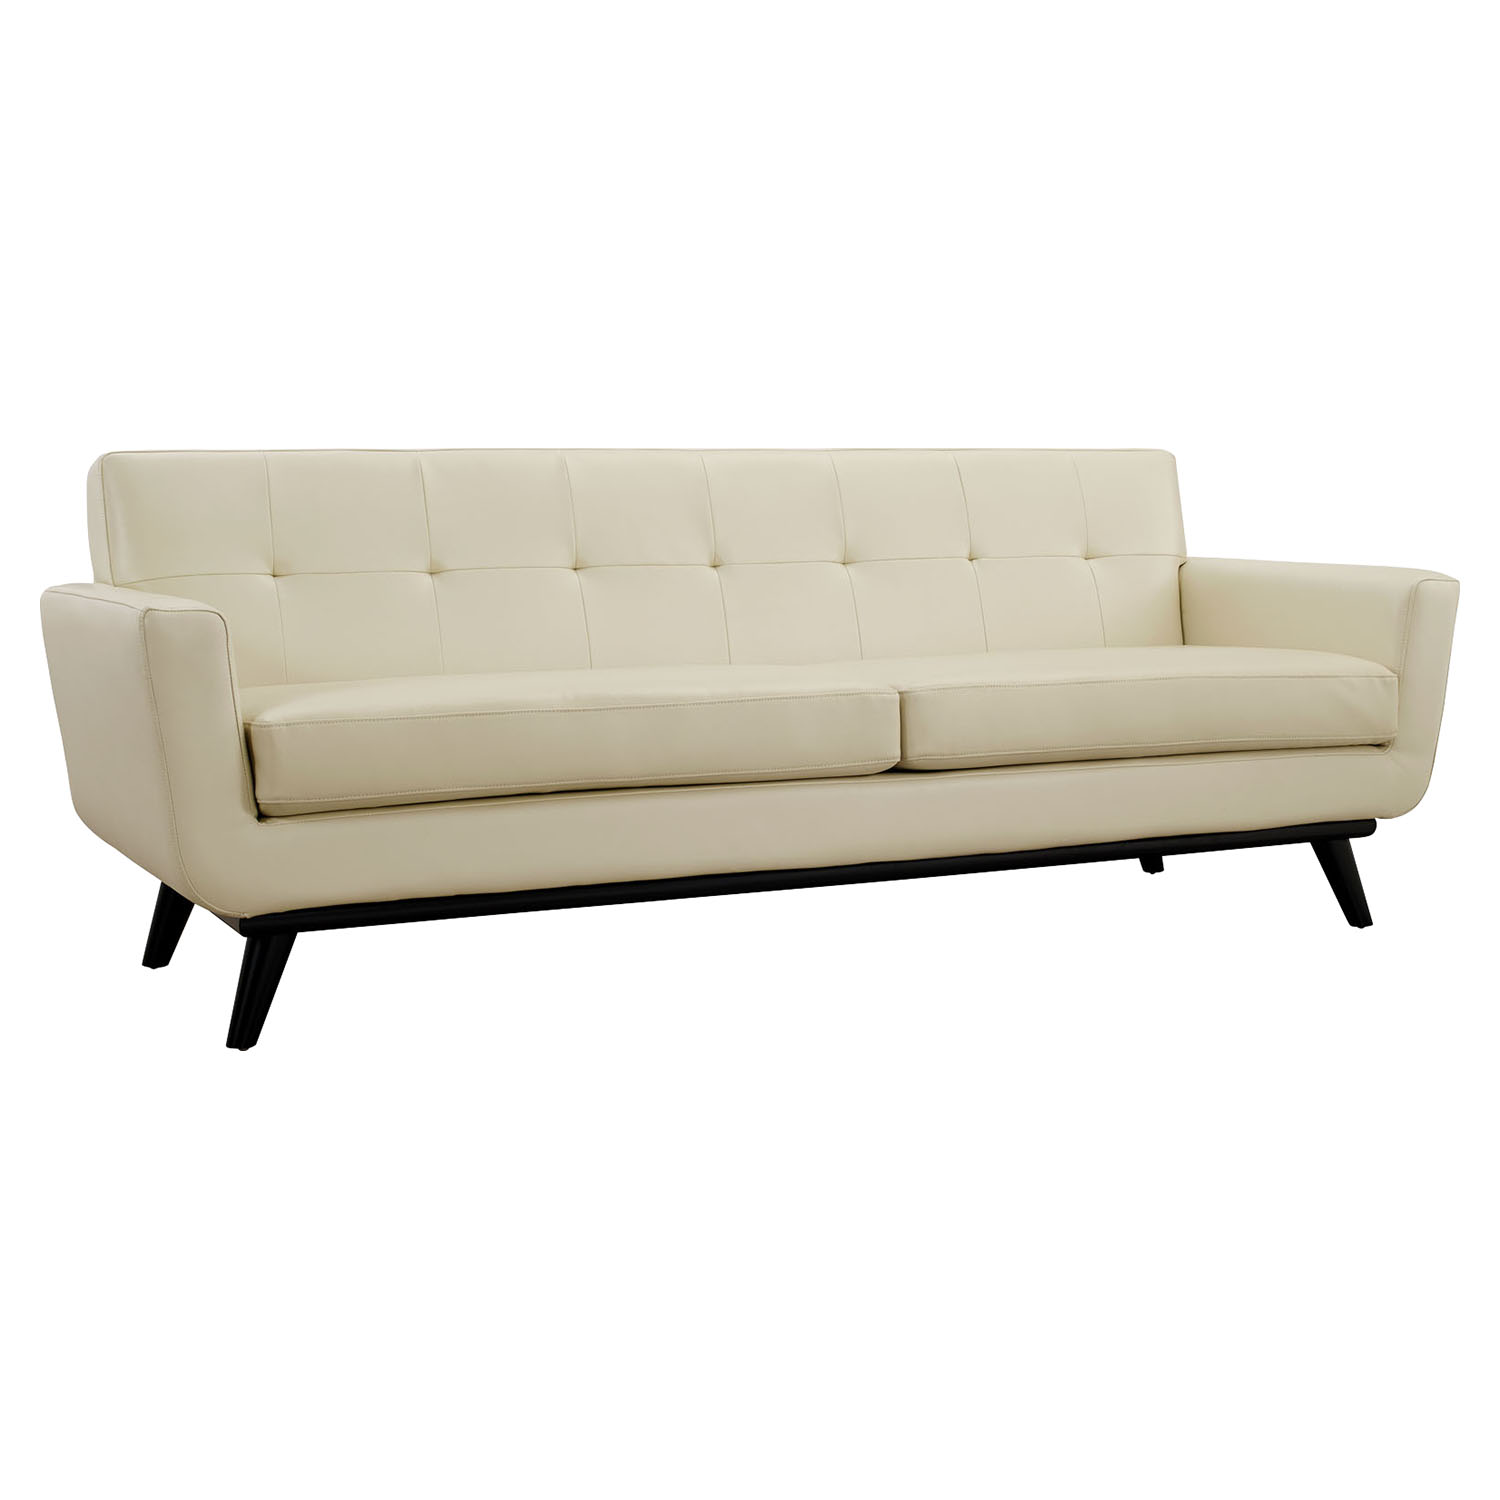 Engage Bonded Leather Sofa - Tufted, Beige - EEI-1338-BEI